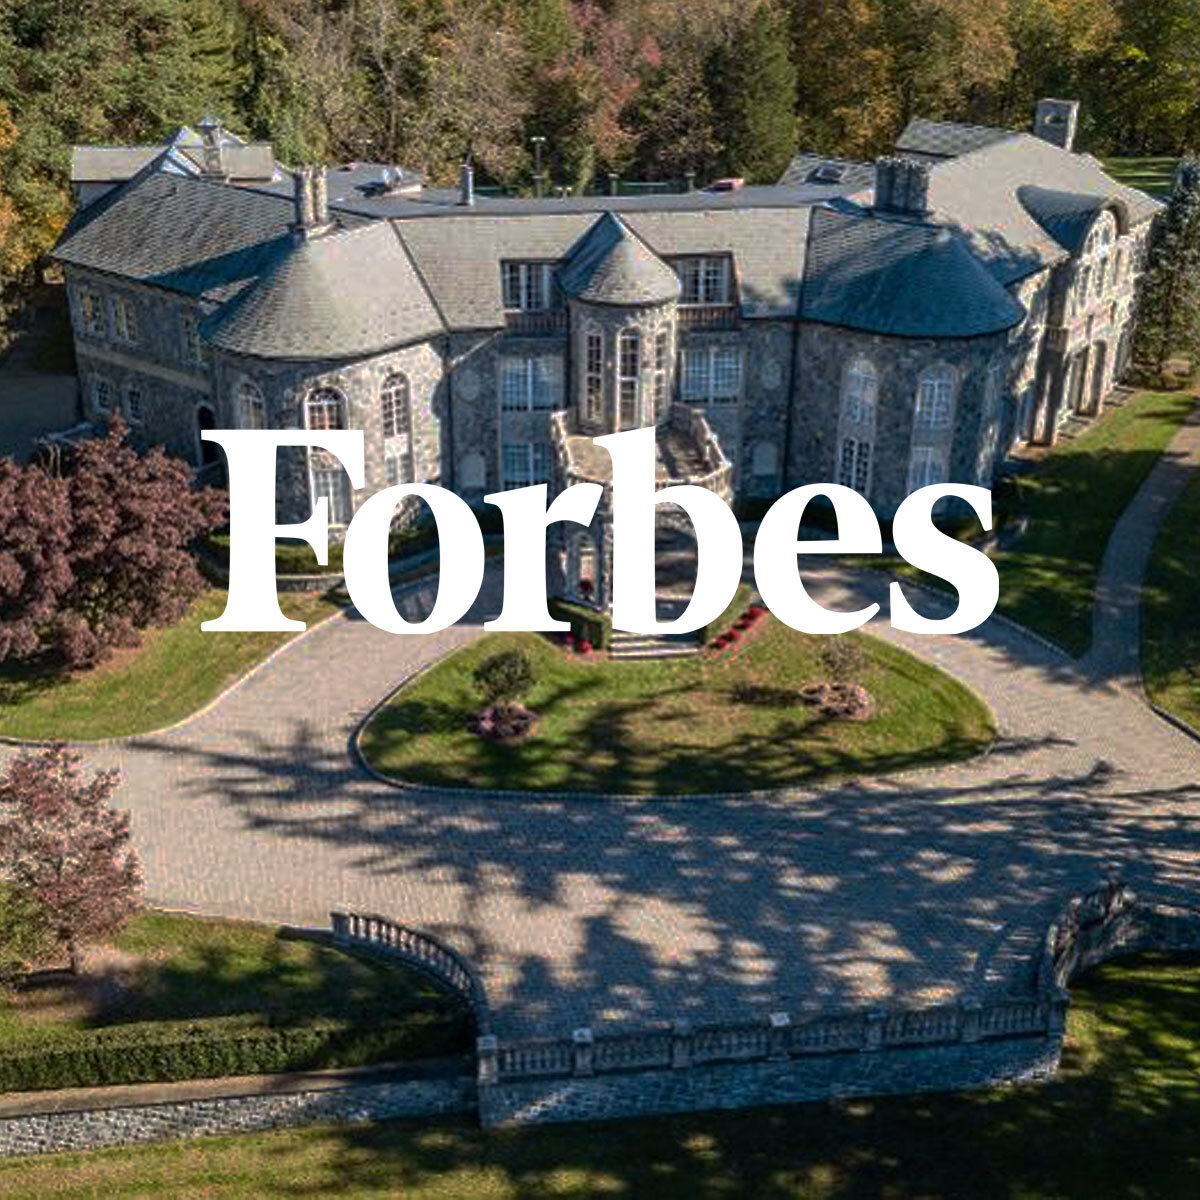 Get Your Bids Ready: New Jersey Home Inspired By Russia's Winter Palace Is Set For Auction